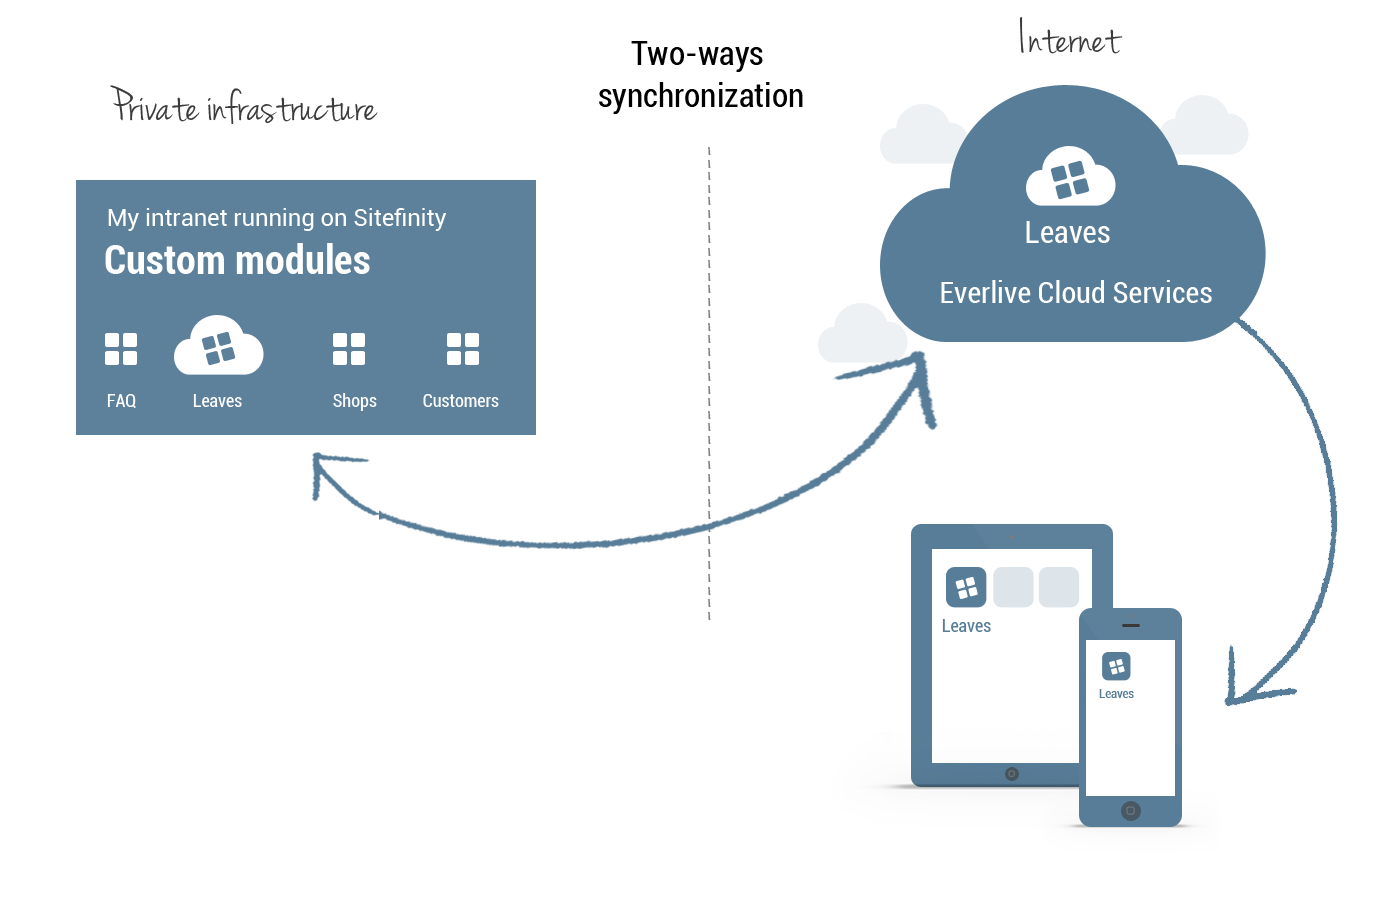 Sitefinity Intranet Hybrid Cloud Solution